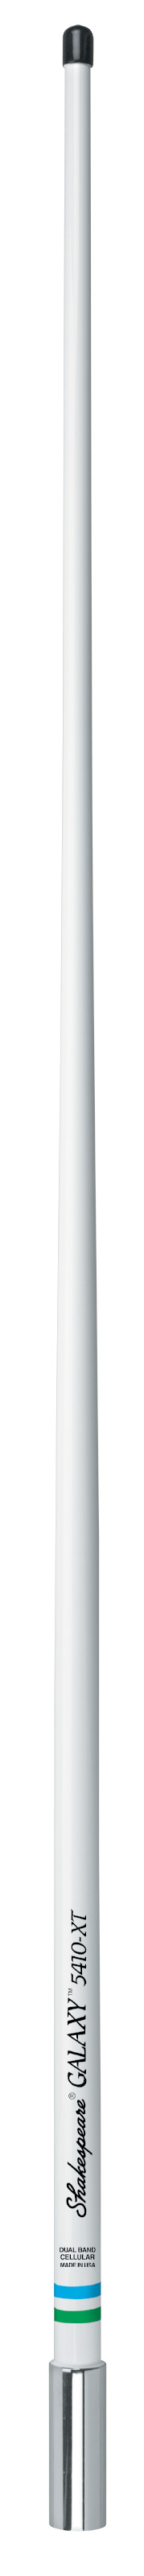 5410XT - Shakespeare 4' 3DB 800/900Mhz/1900Mhz Cellular Marine Antenna